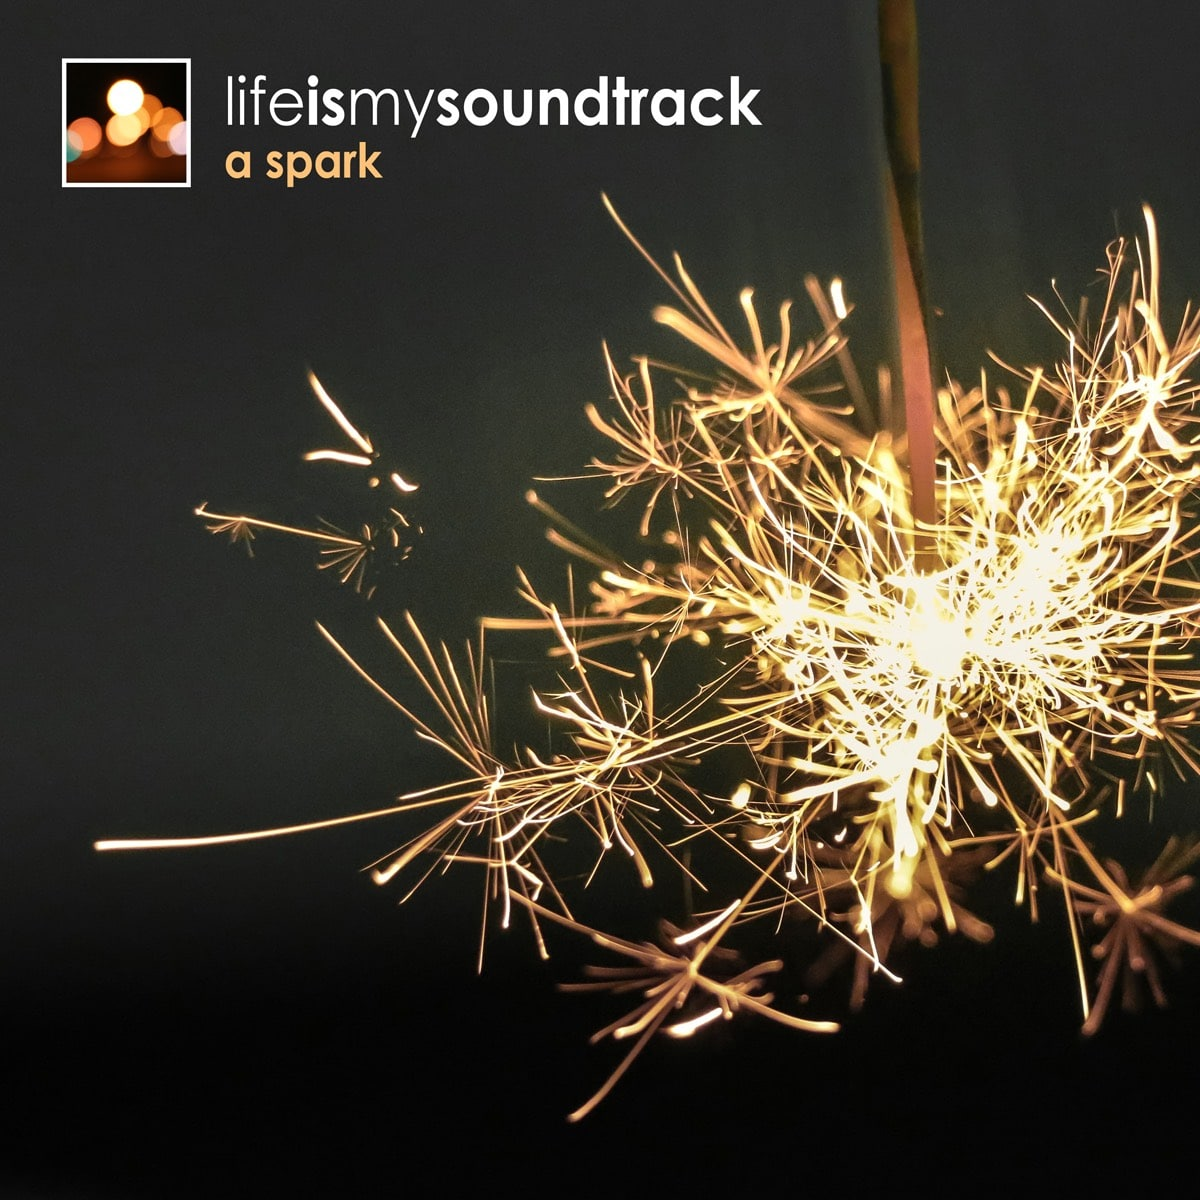 The album A Spark by Life Is My Soundtrack - Sometimes, it begins with a spark